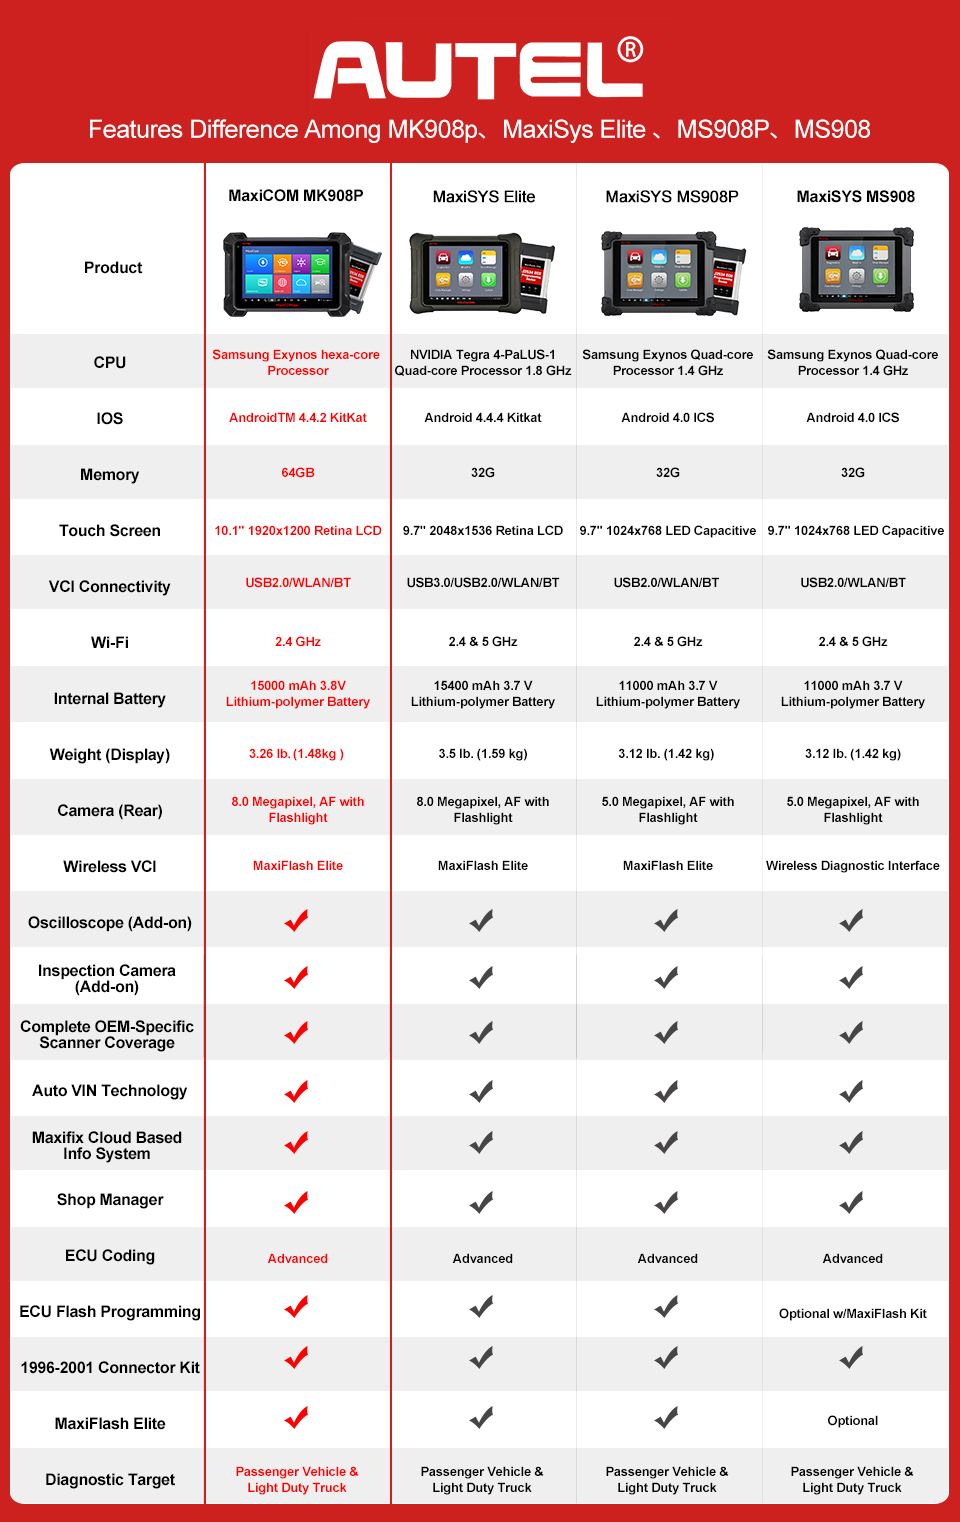 autel maxicom mk908p compared with maxisys ms908p